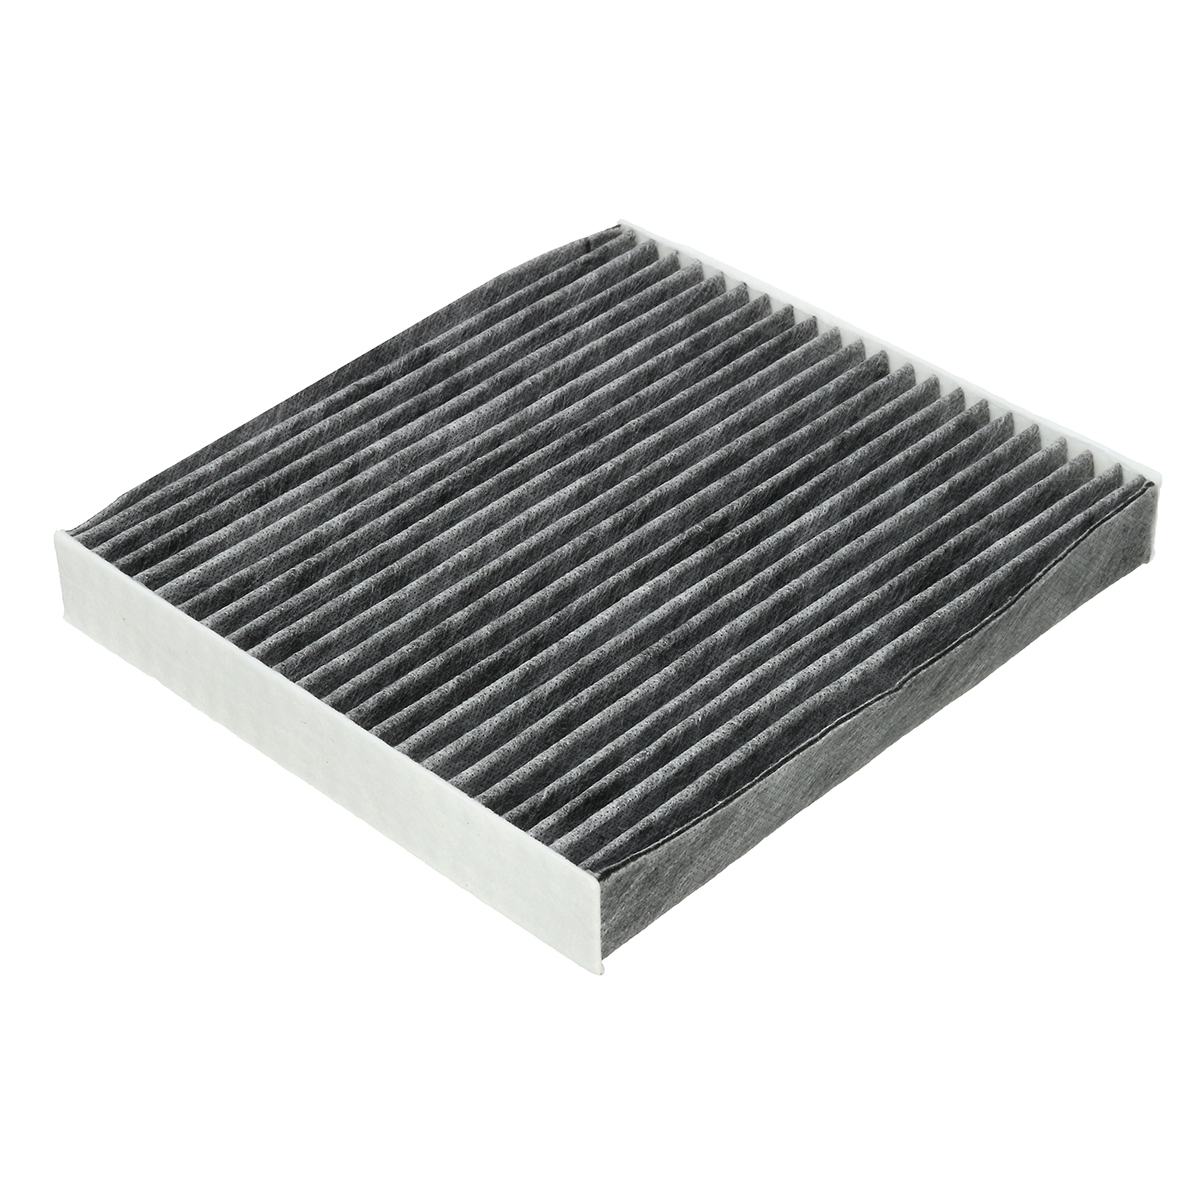 ac cabin air filter for toyota camry rav4 yaris corolla 87139 07010 87139 yzz. Black Bedroom Furniture Sets. Home Design Ideas